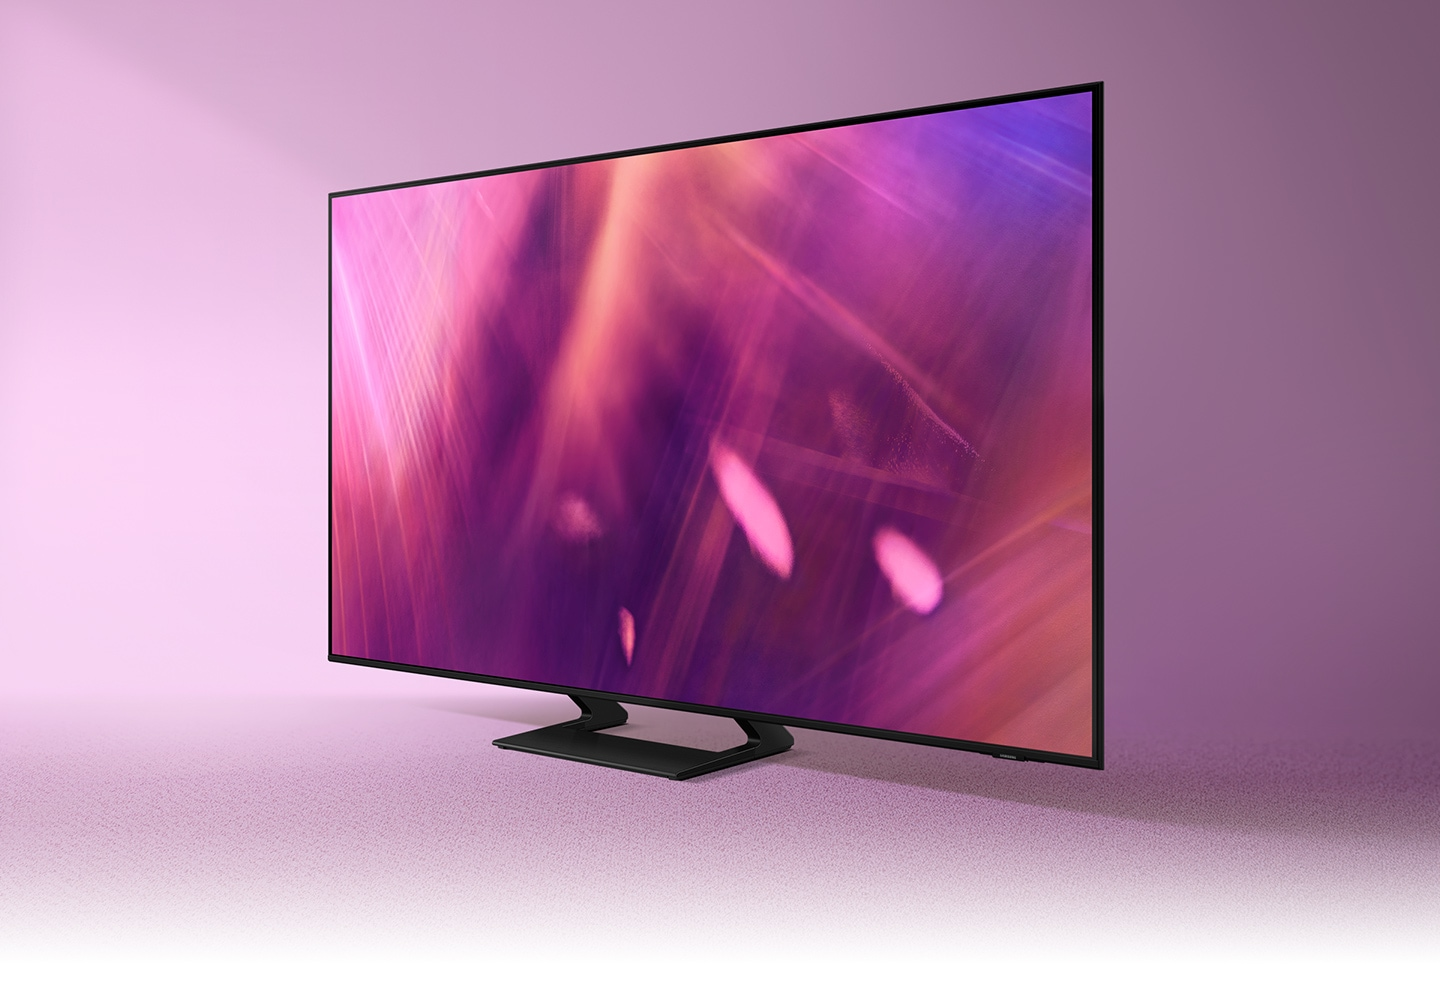 AU9000 displays intricately blended color graphics which demonstrate vivid crystal color.